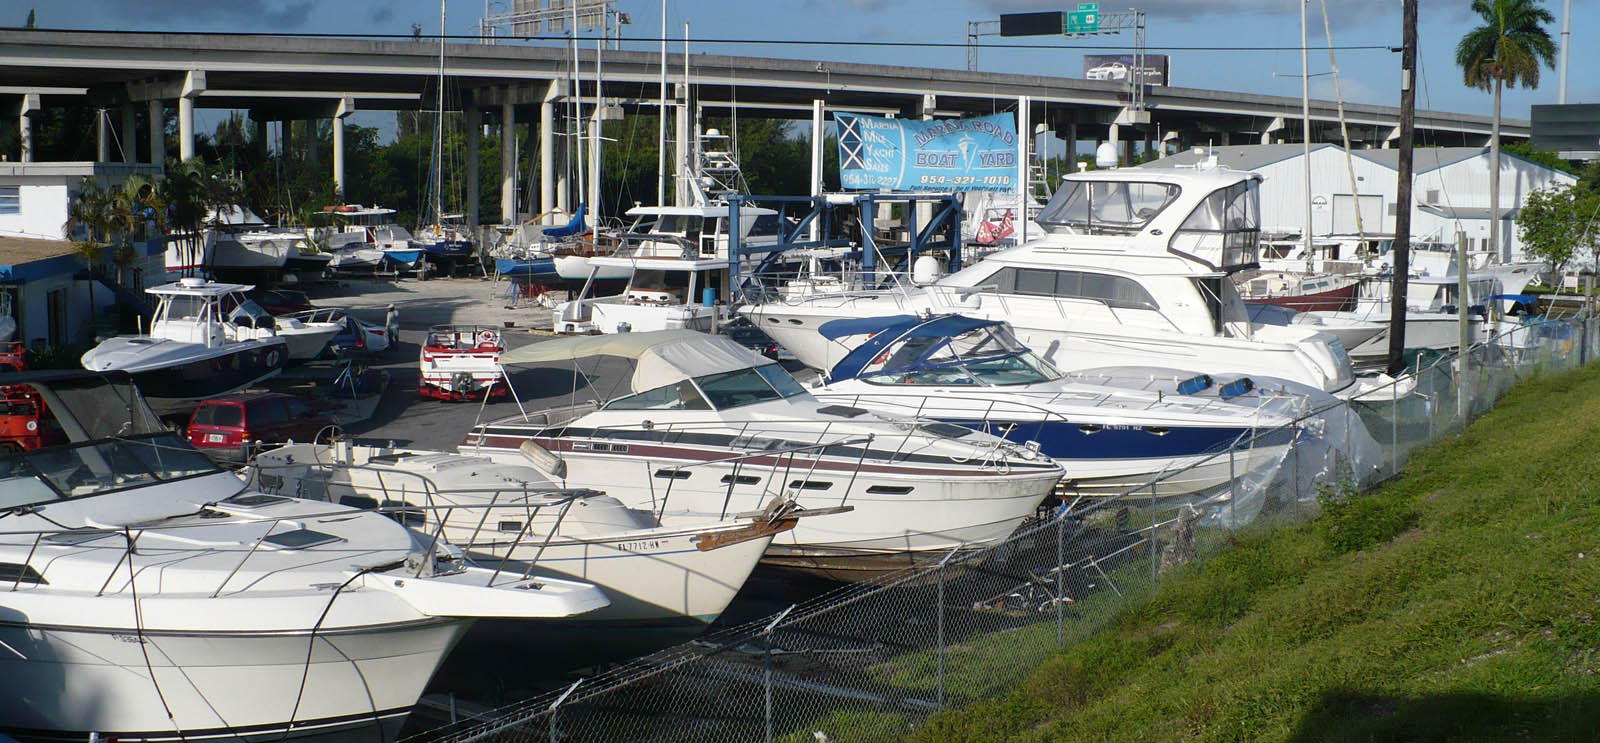 Docked boats in Ft Lauderdale Florida marina